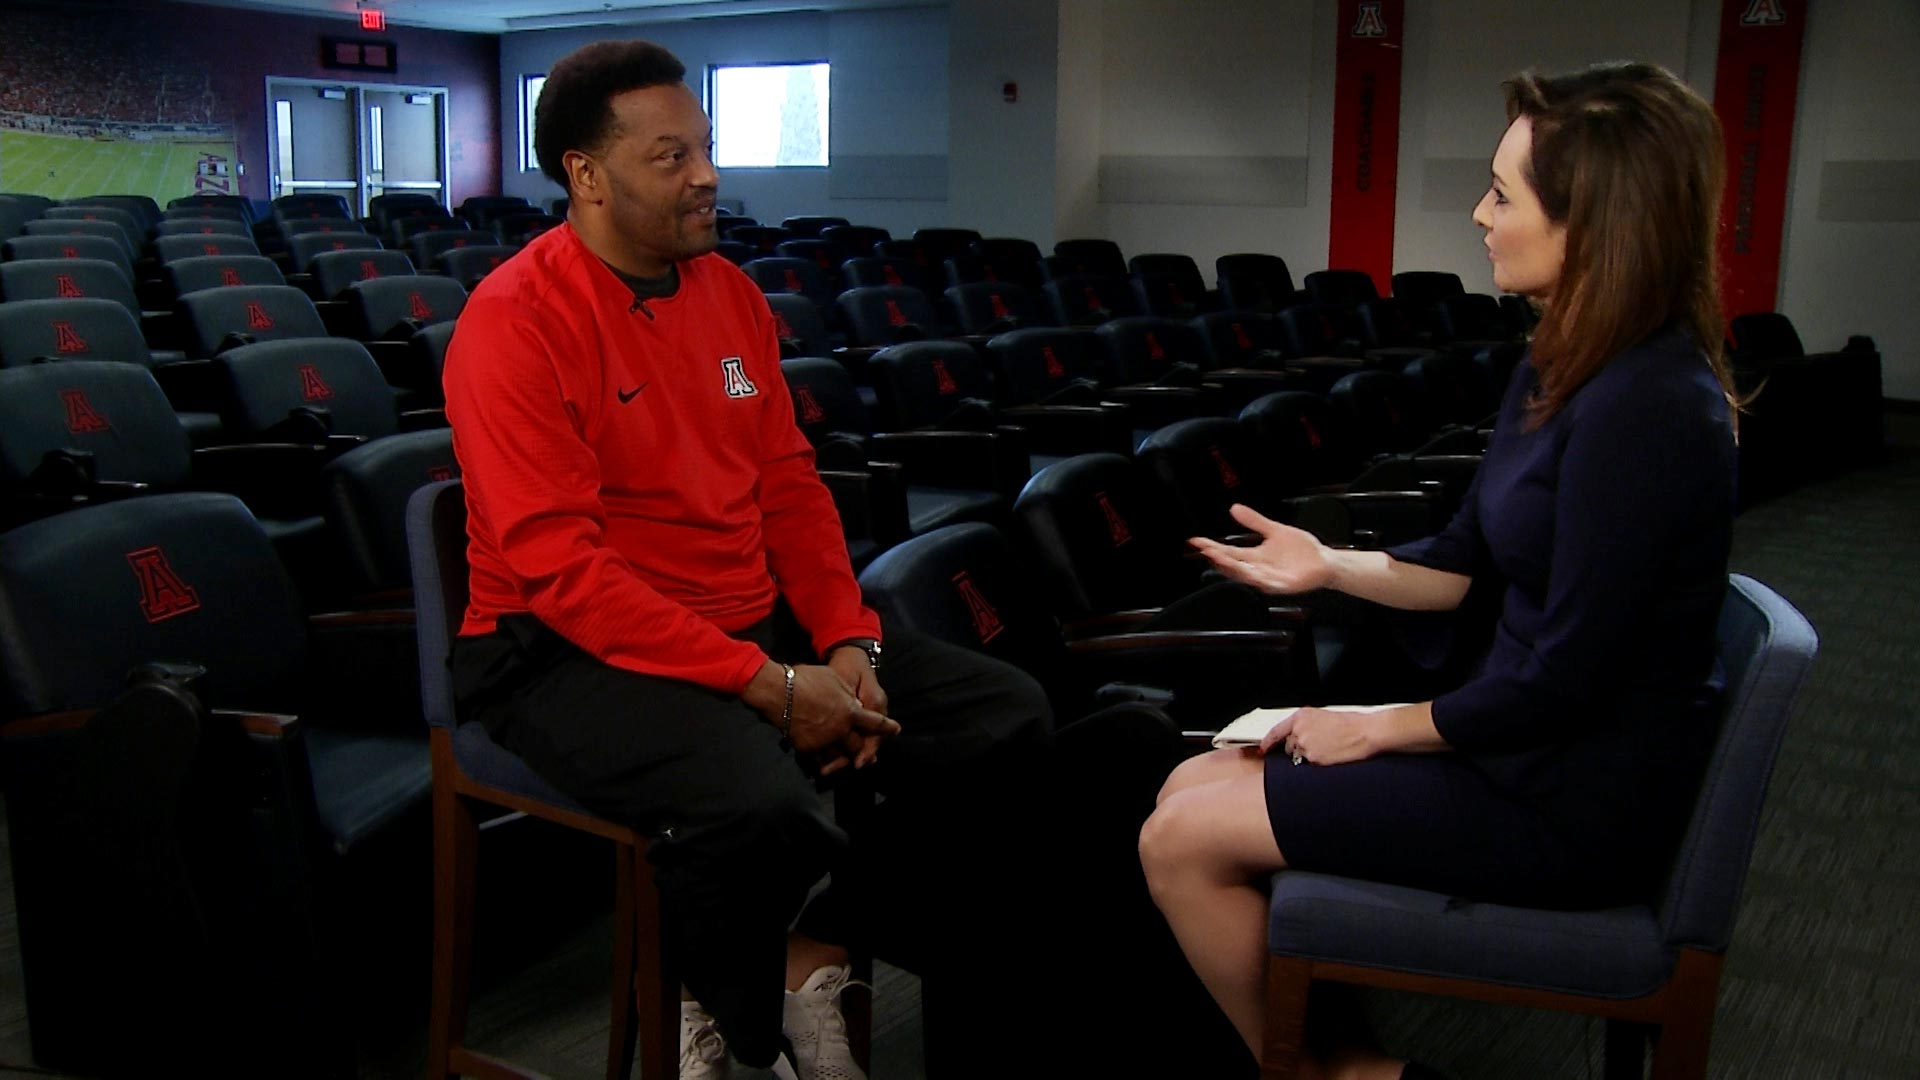 University of Arizona football coach Kevin Sumlin sits down with Lorraine Rivera inside Arizona Stadium for an interview on February 22, 2019.